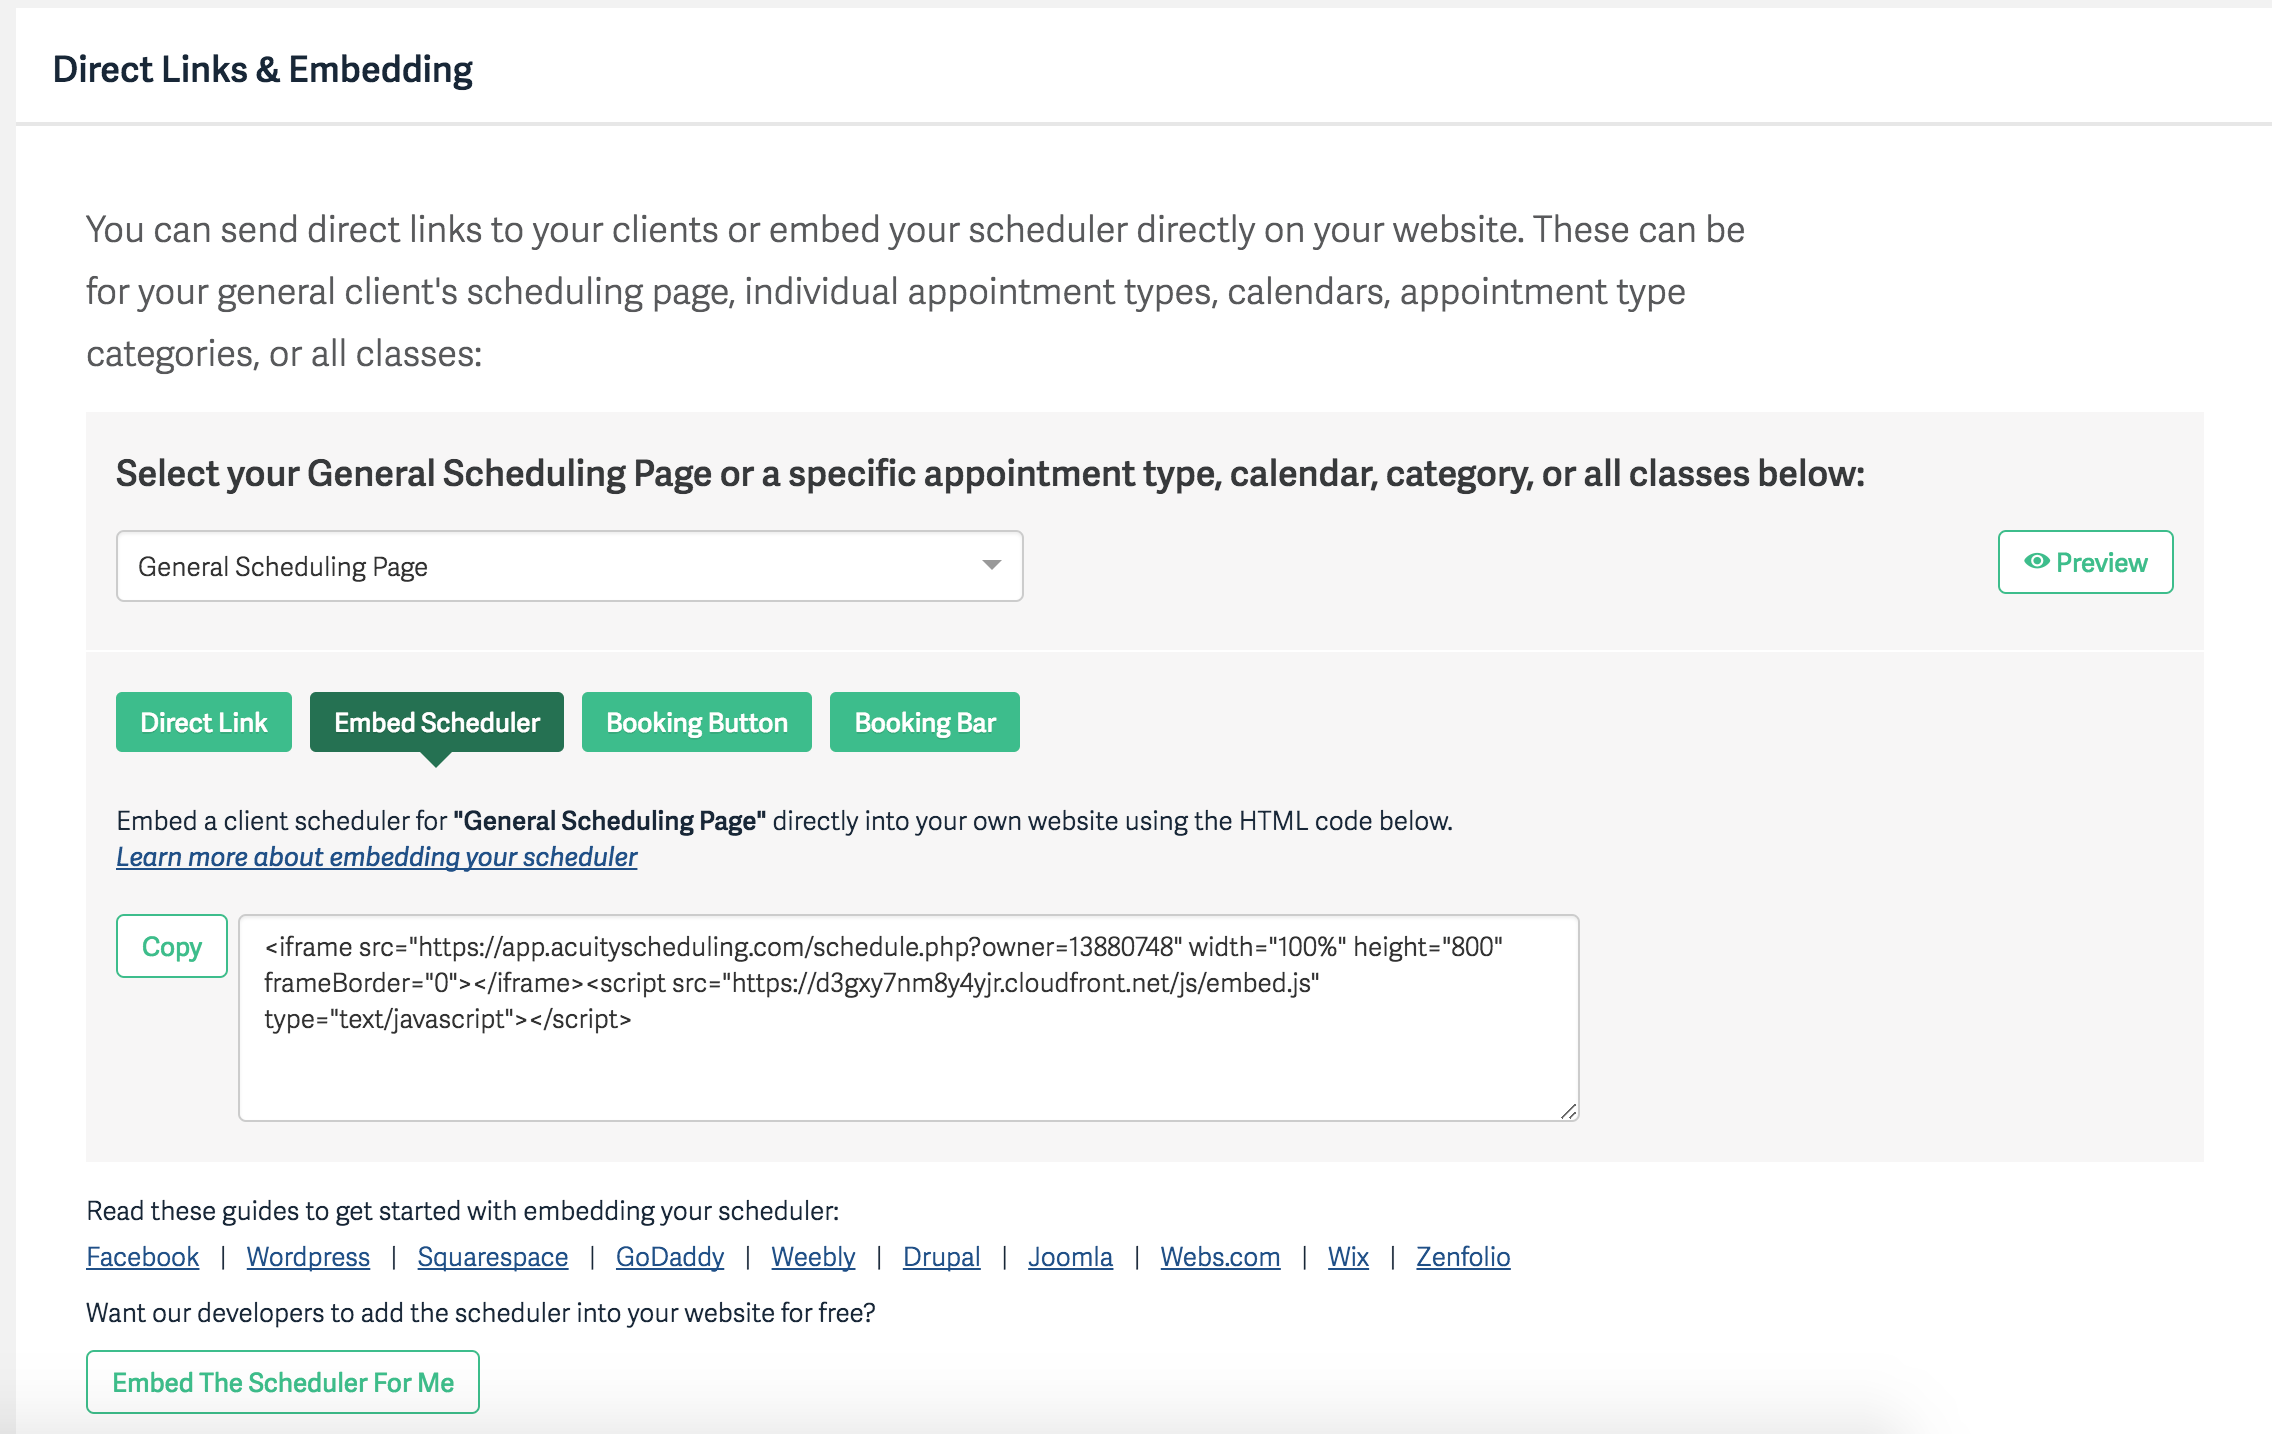 Can I Embed My Scheduler on my Website? – Acuity Scheduling